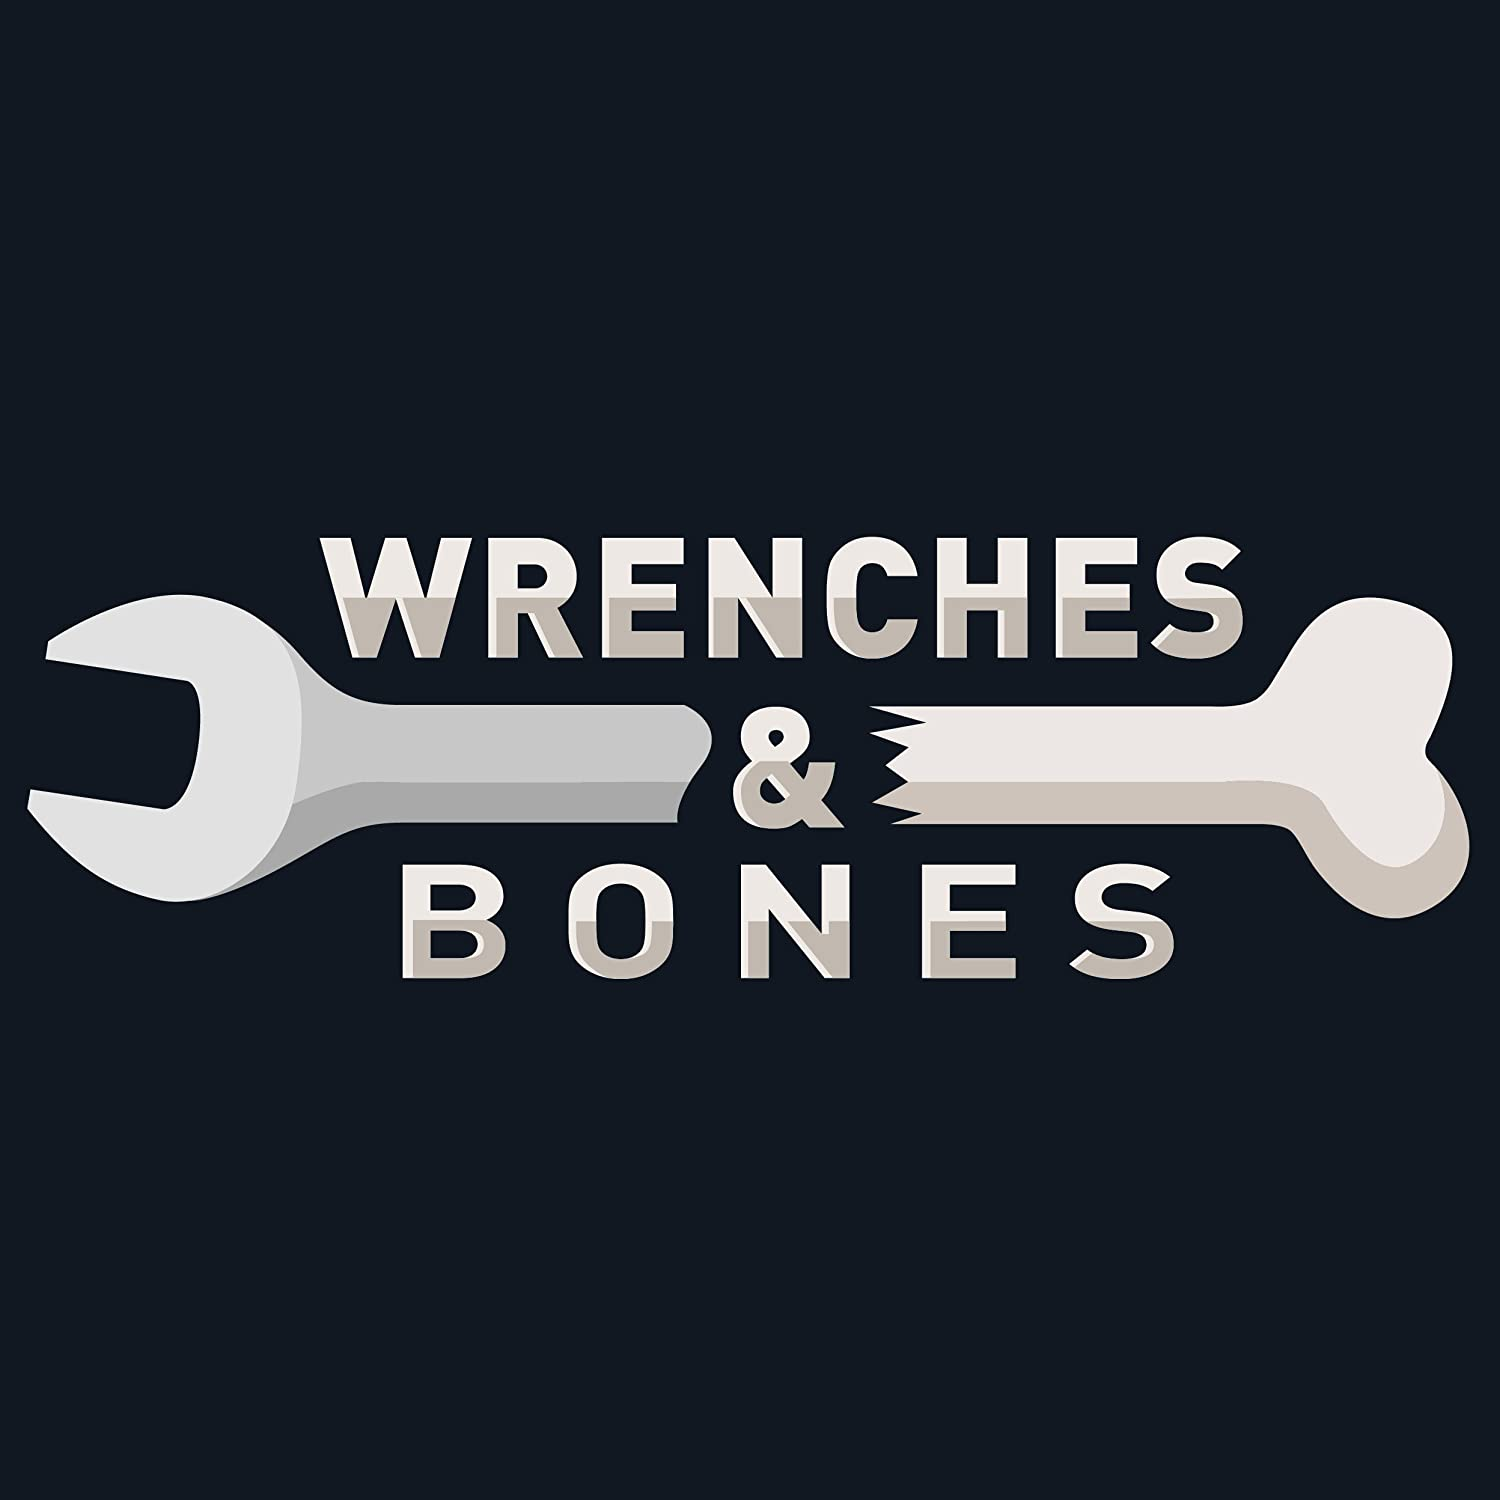 Wrenches /& Bones Key Chain for Jeep Enthusiasts Dont Follow Me You Wont Make It Great Advice and Gift Idea For Any Jeep Owner Built by for Jeep Wrangler Accessories Enthusiasts Wrenches /& BonesTM WB-002